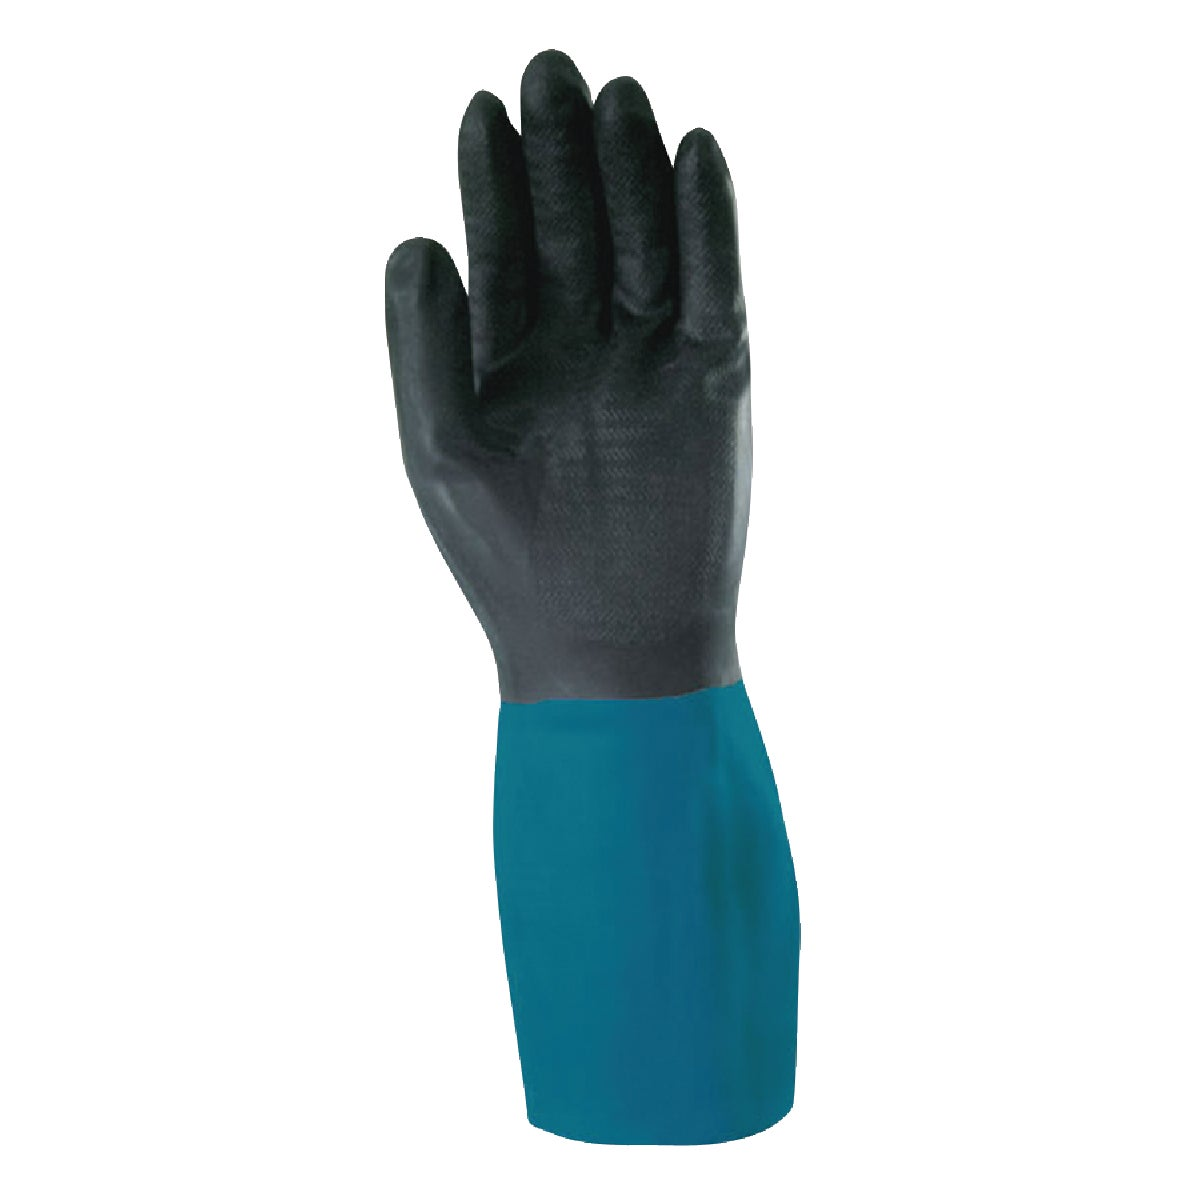 "13"" LATEX NEOPRENE GLOVE - 191L by Wells Lamont"